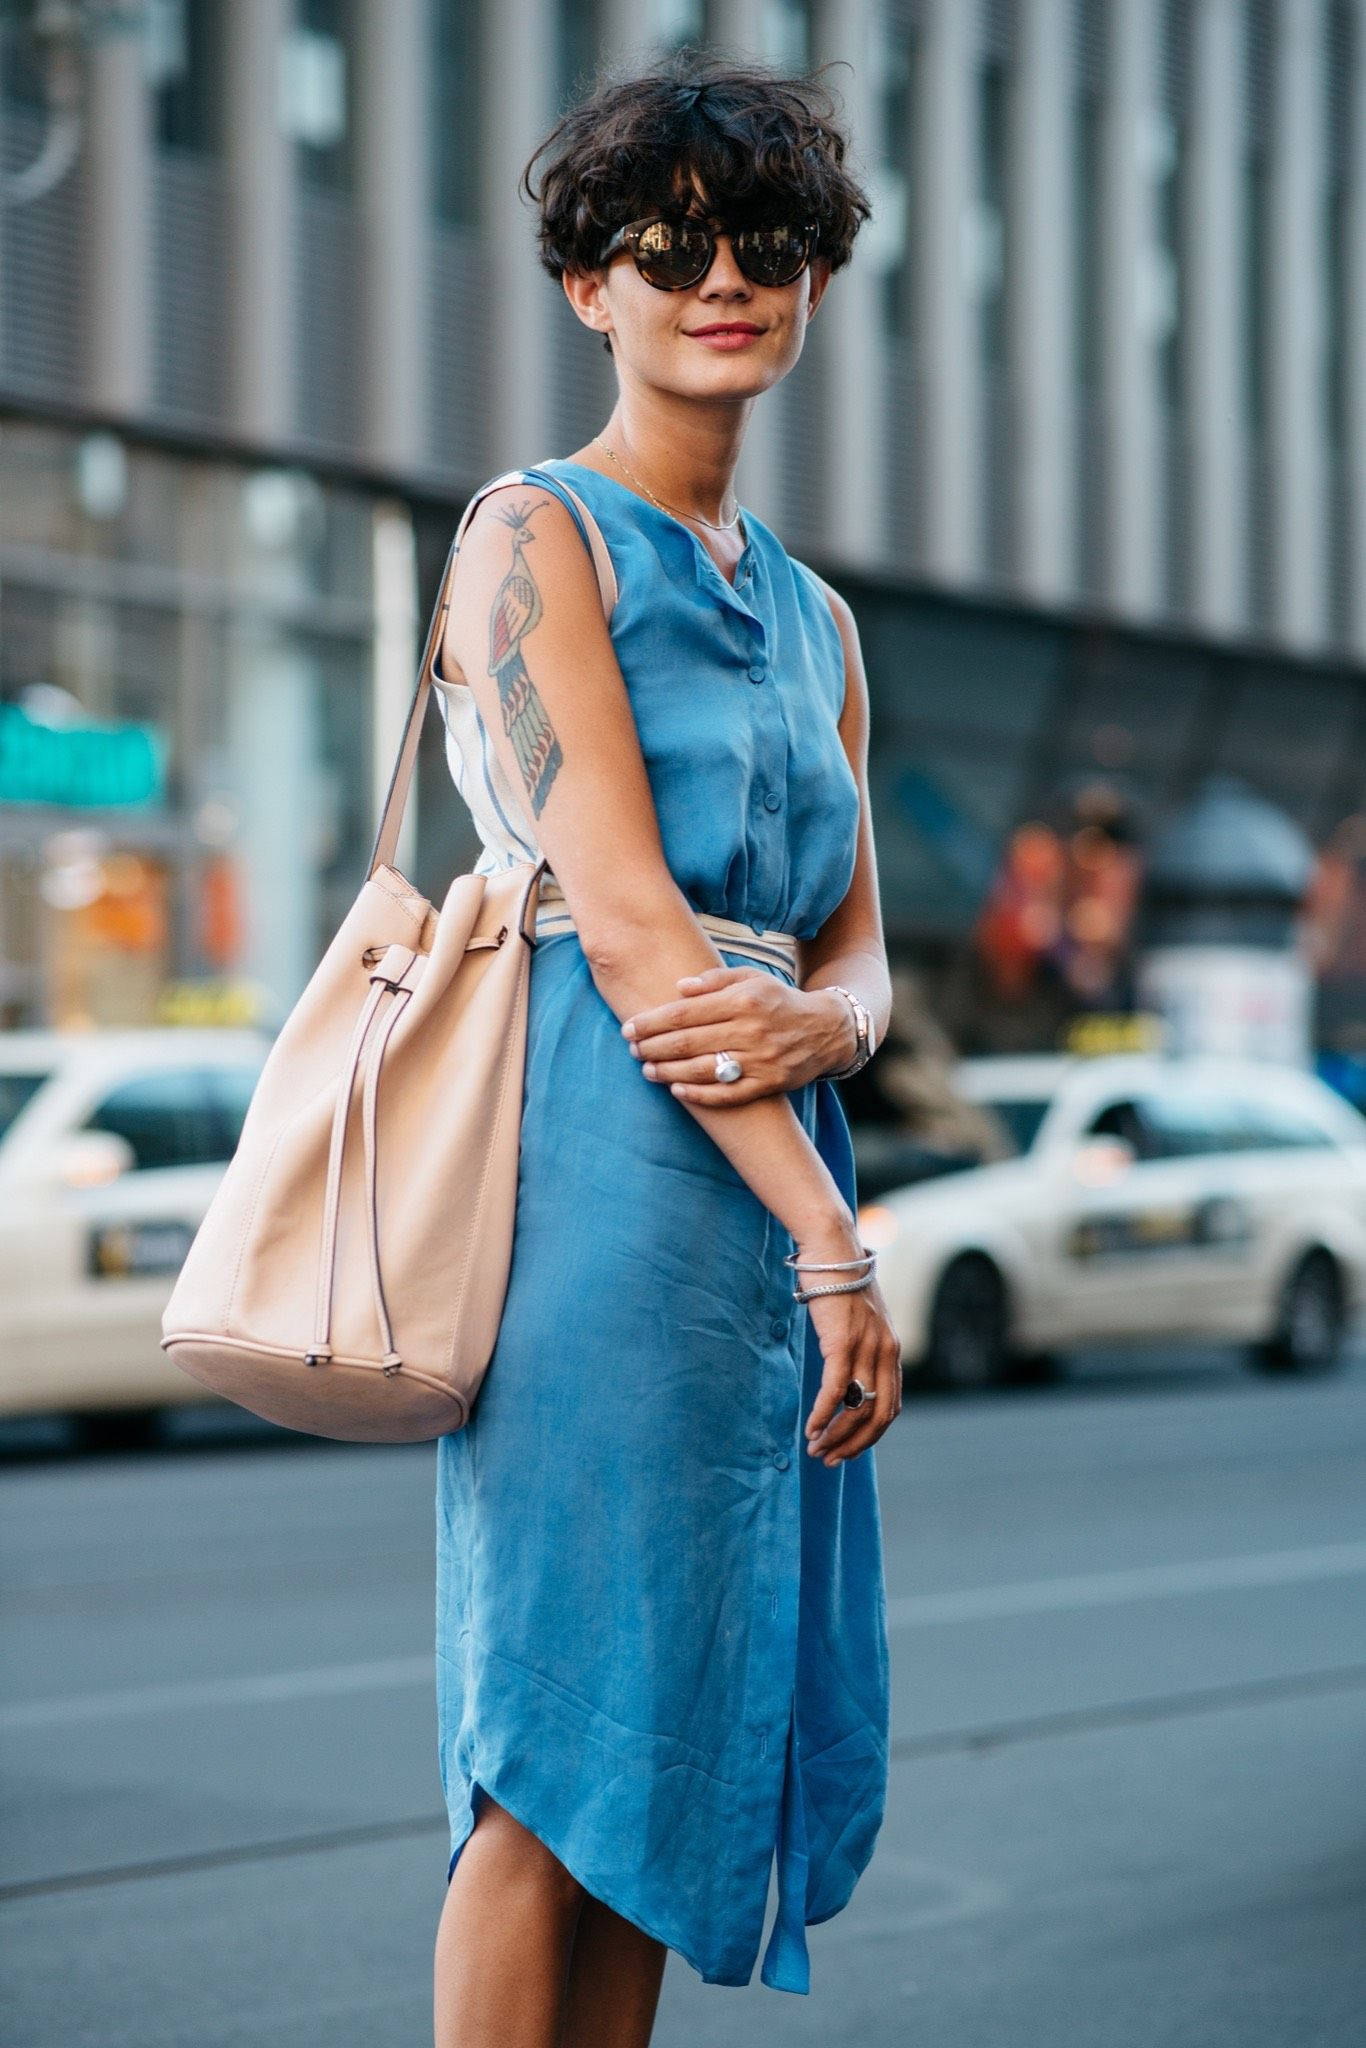 Strasse Style: All the Best Looks From Berlin Fashion Week - Gallery - Style.com